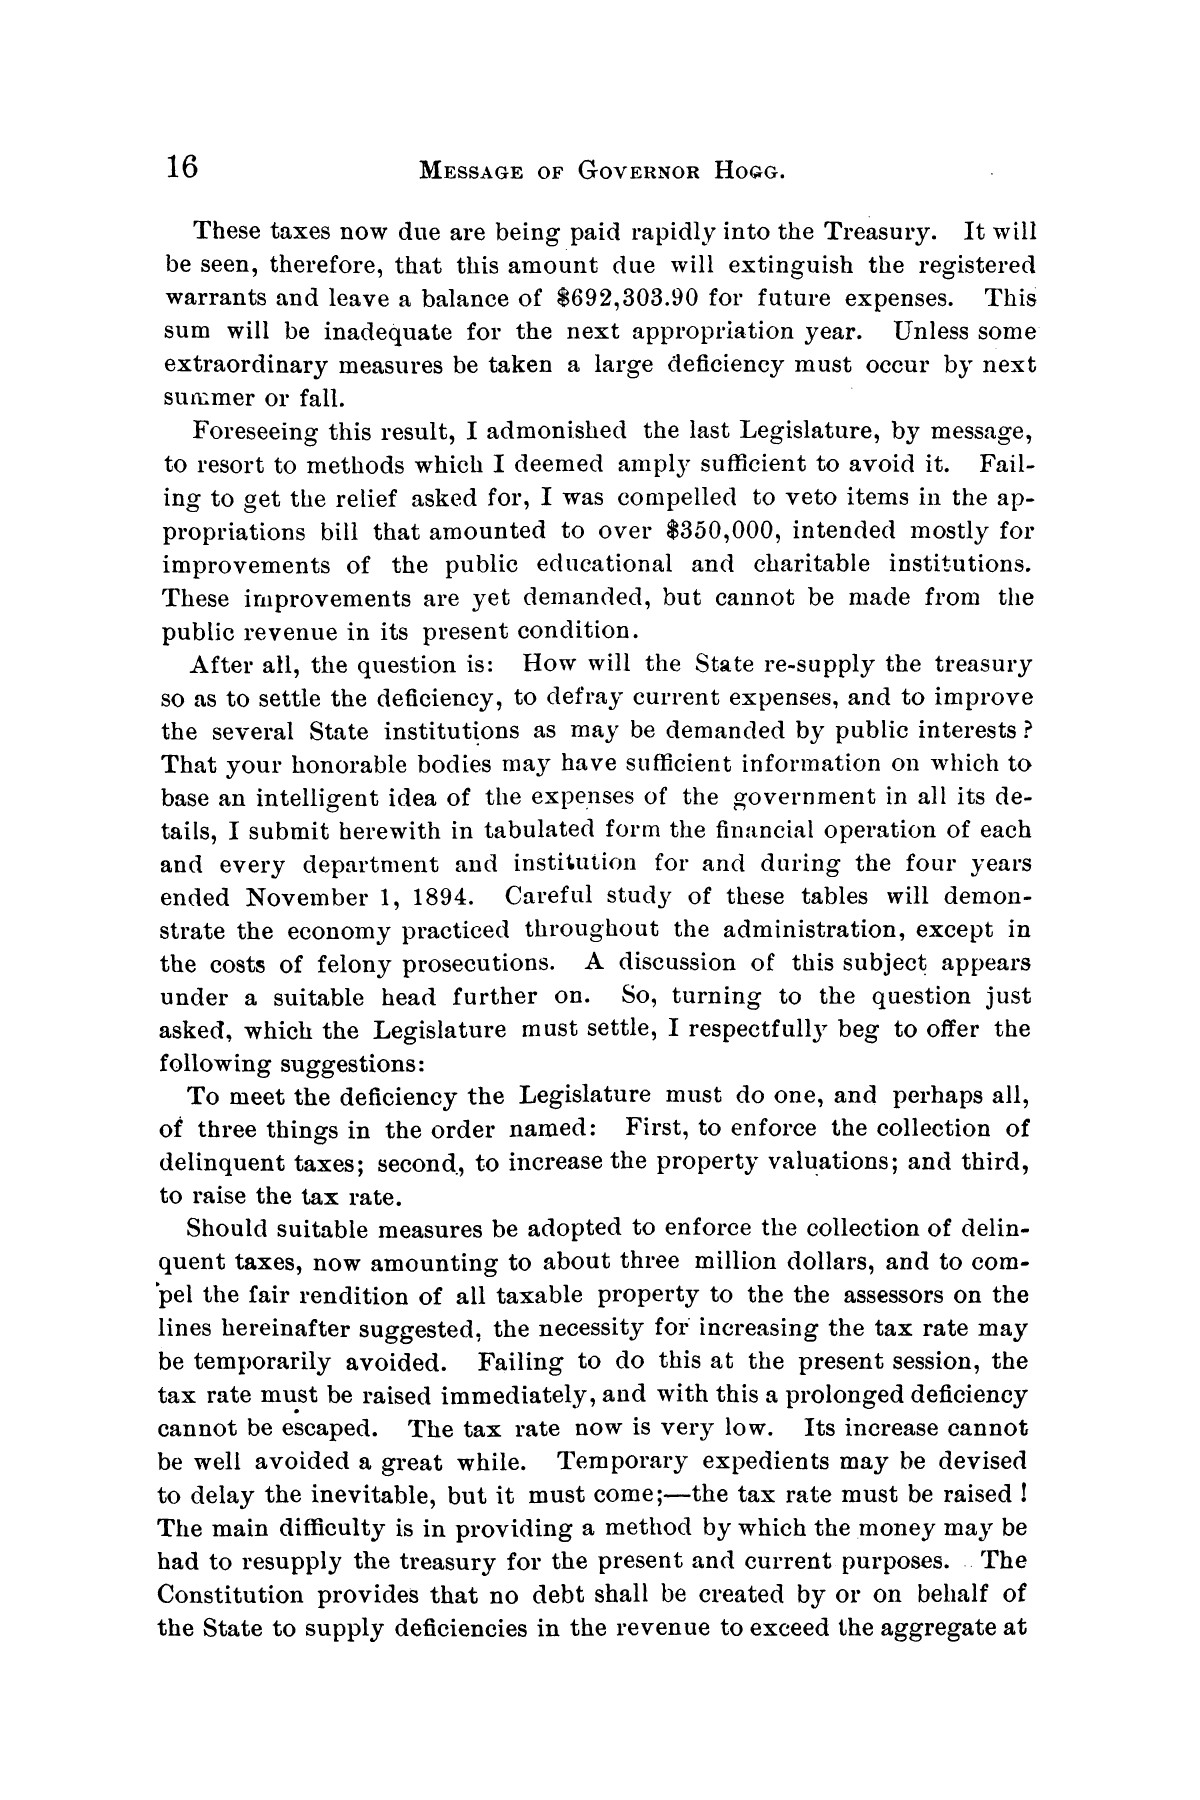 Message of Governor James S. Hogg to the twenty-fourth legislature of Texas                                                                                                      [Sequence #]: 16 of 48